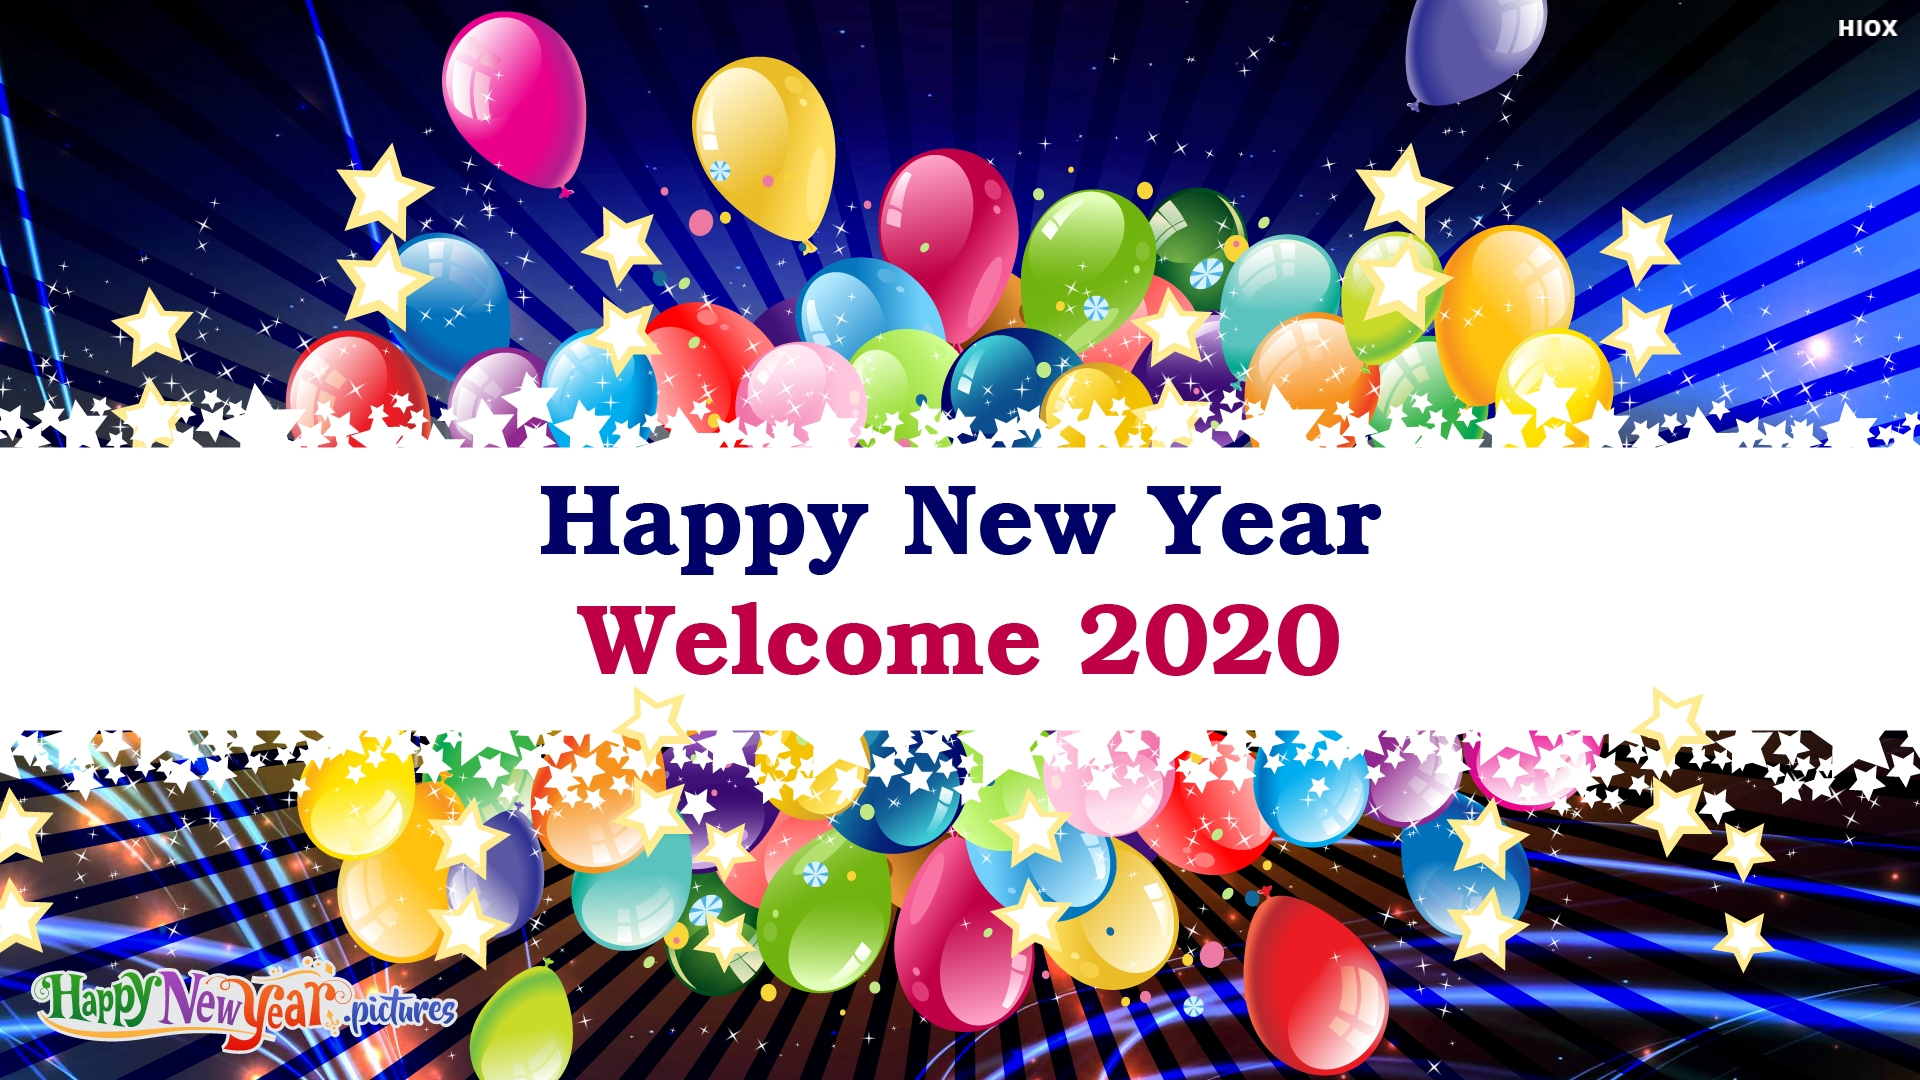 Happy New Year... Let